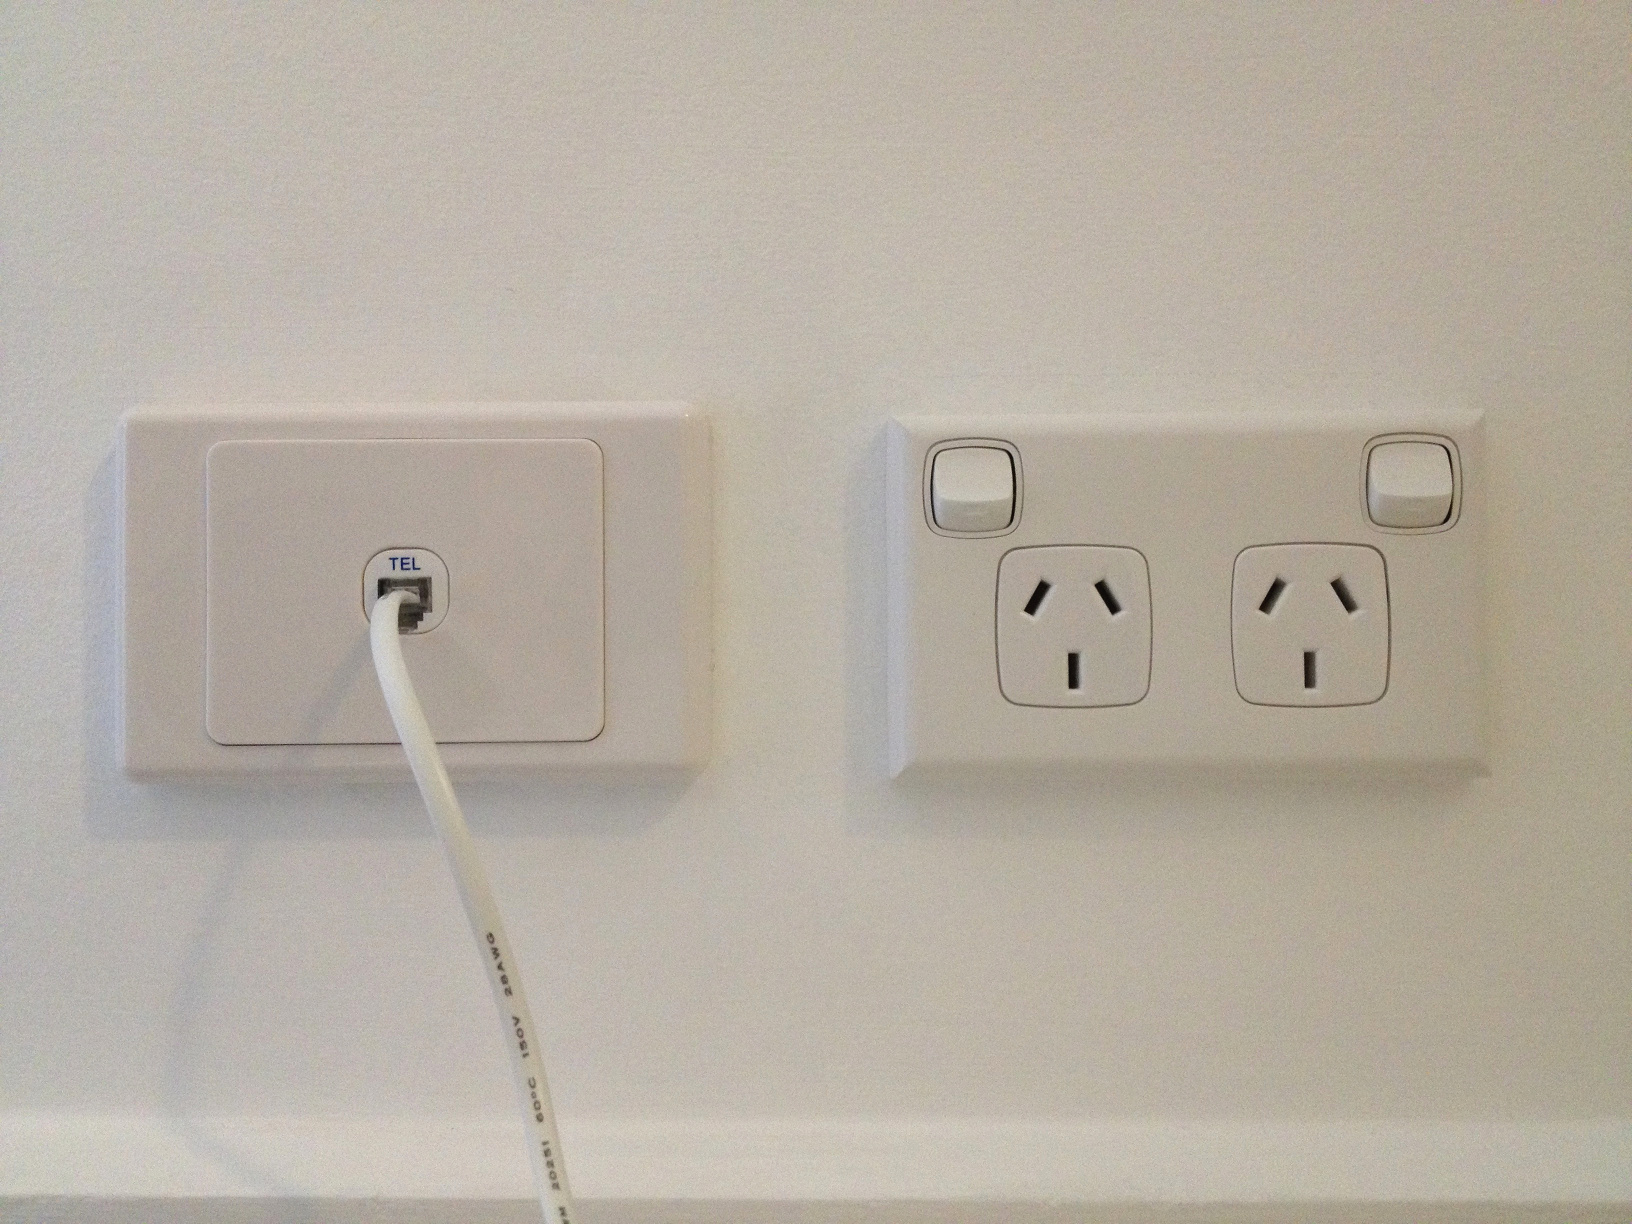 hight resolution of upgrading a 600 series phone socket to rj11 tp69 socket outlet google on australian telephone wall socket wiring